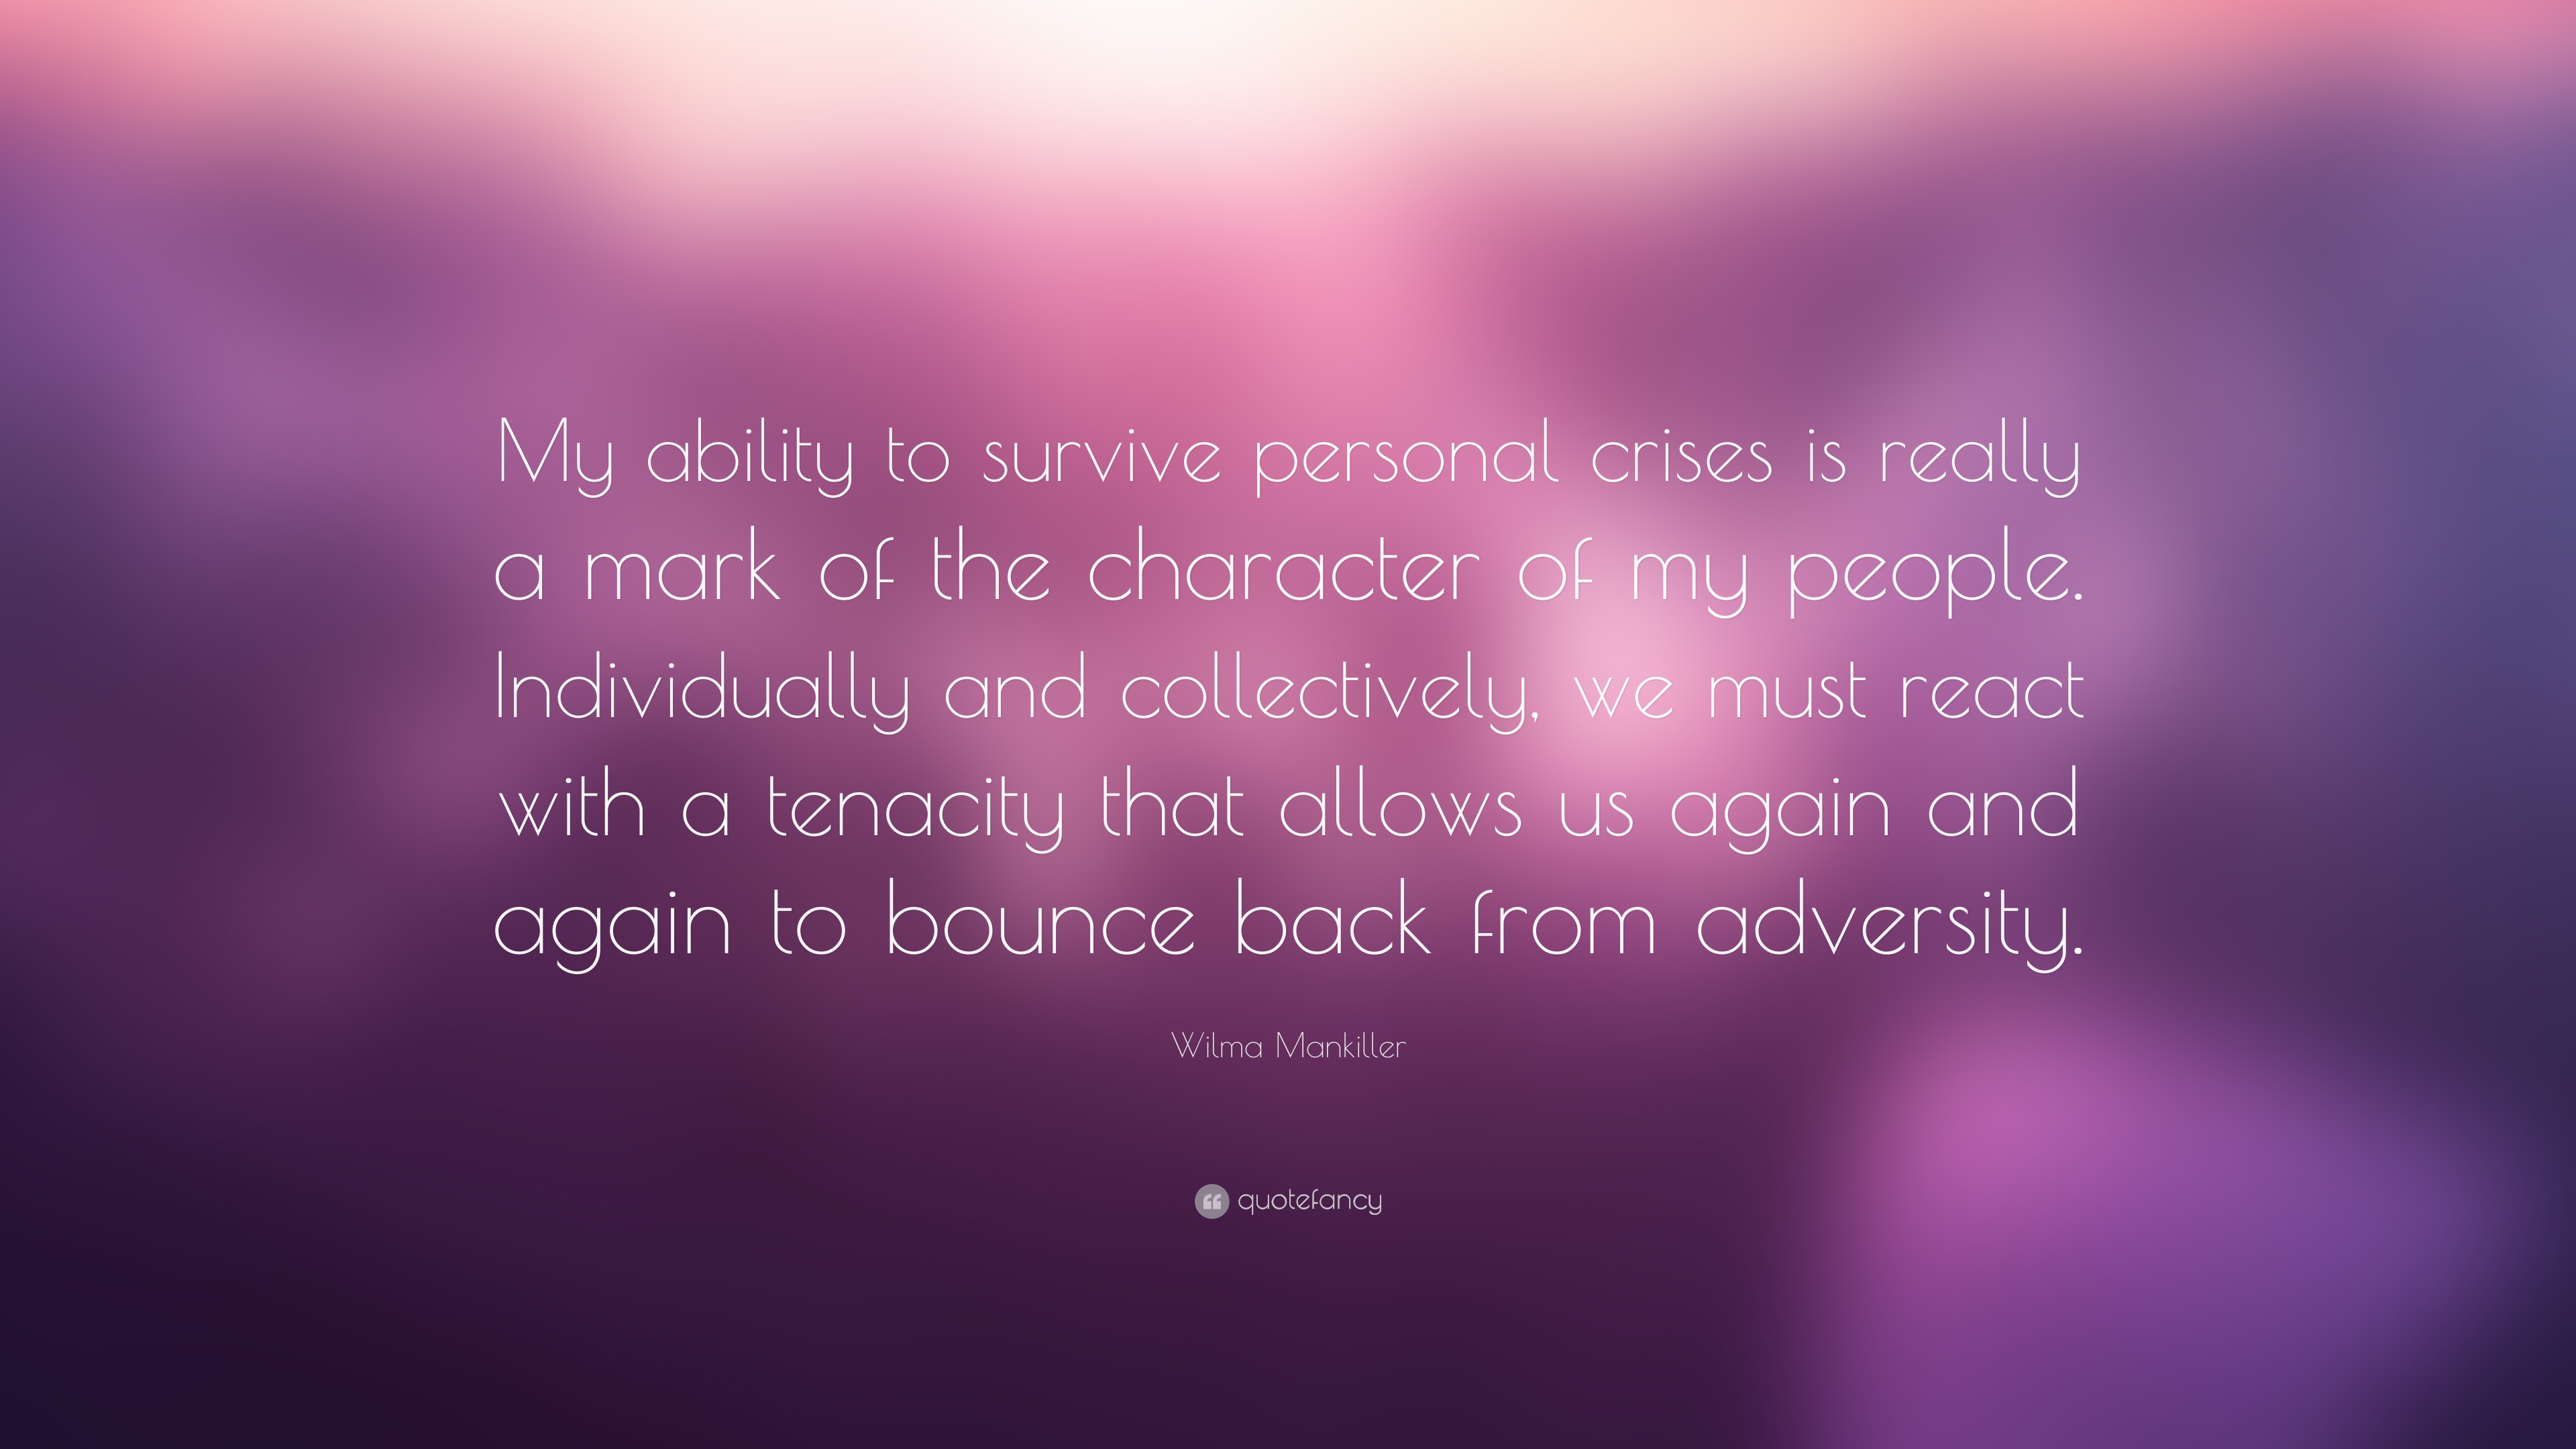 wilma mankiller quotes quotefancy wilma mankiller quote my ability to survive personal crises is really a mark of